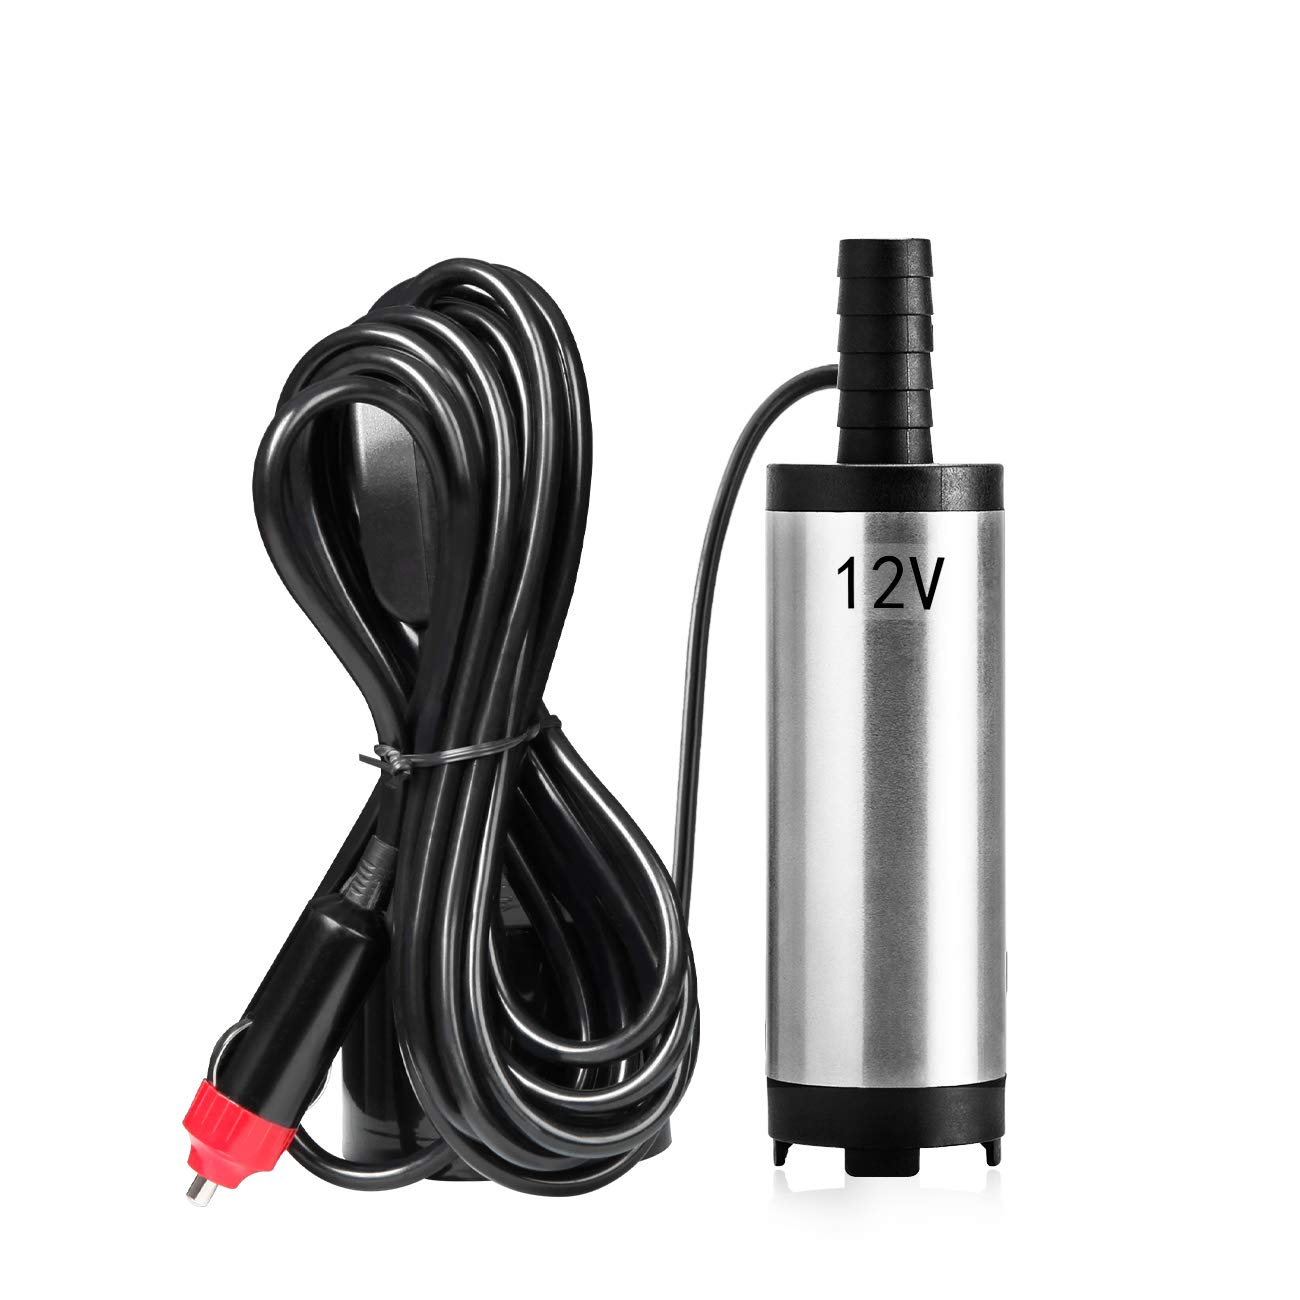 Favoto Submersible Diesel Water Pump 12V Refueling 38mm/1.5' Diameter Electronic Oil Pump Aluminum Alloy Body 18 L/min 4M Cable for Boat Car Aquarium FTUS-Oil-Pump-38MM